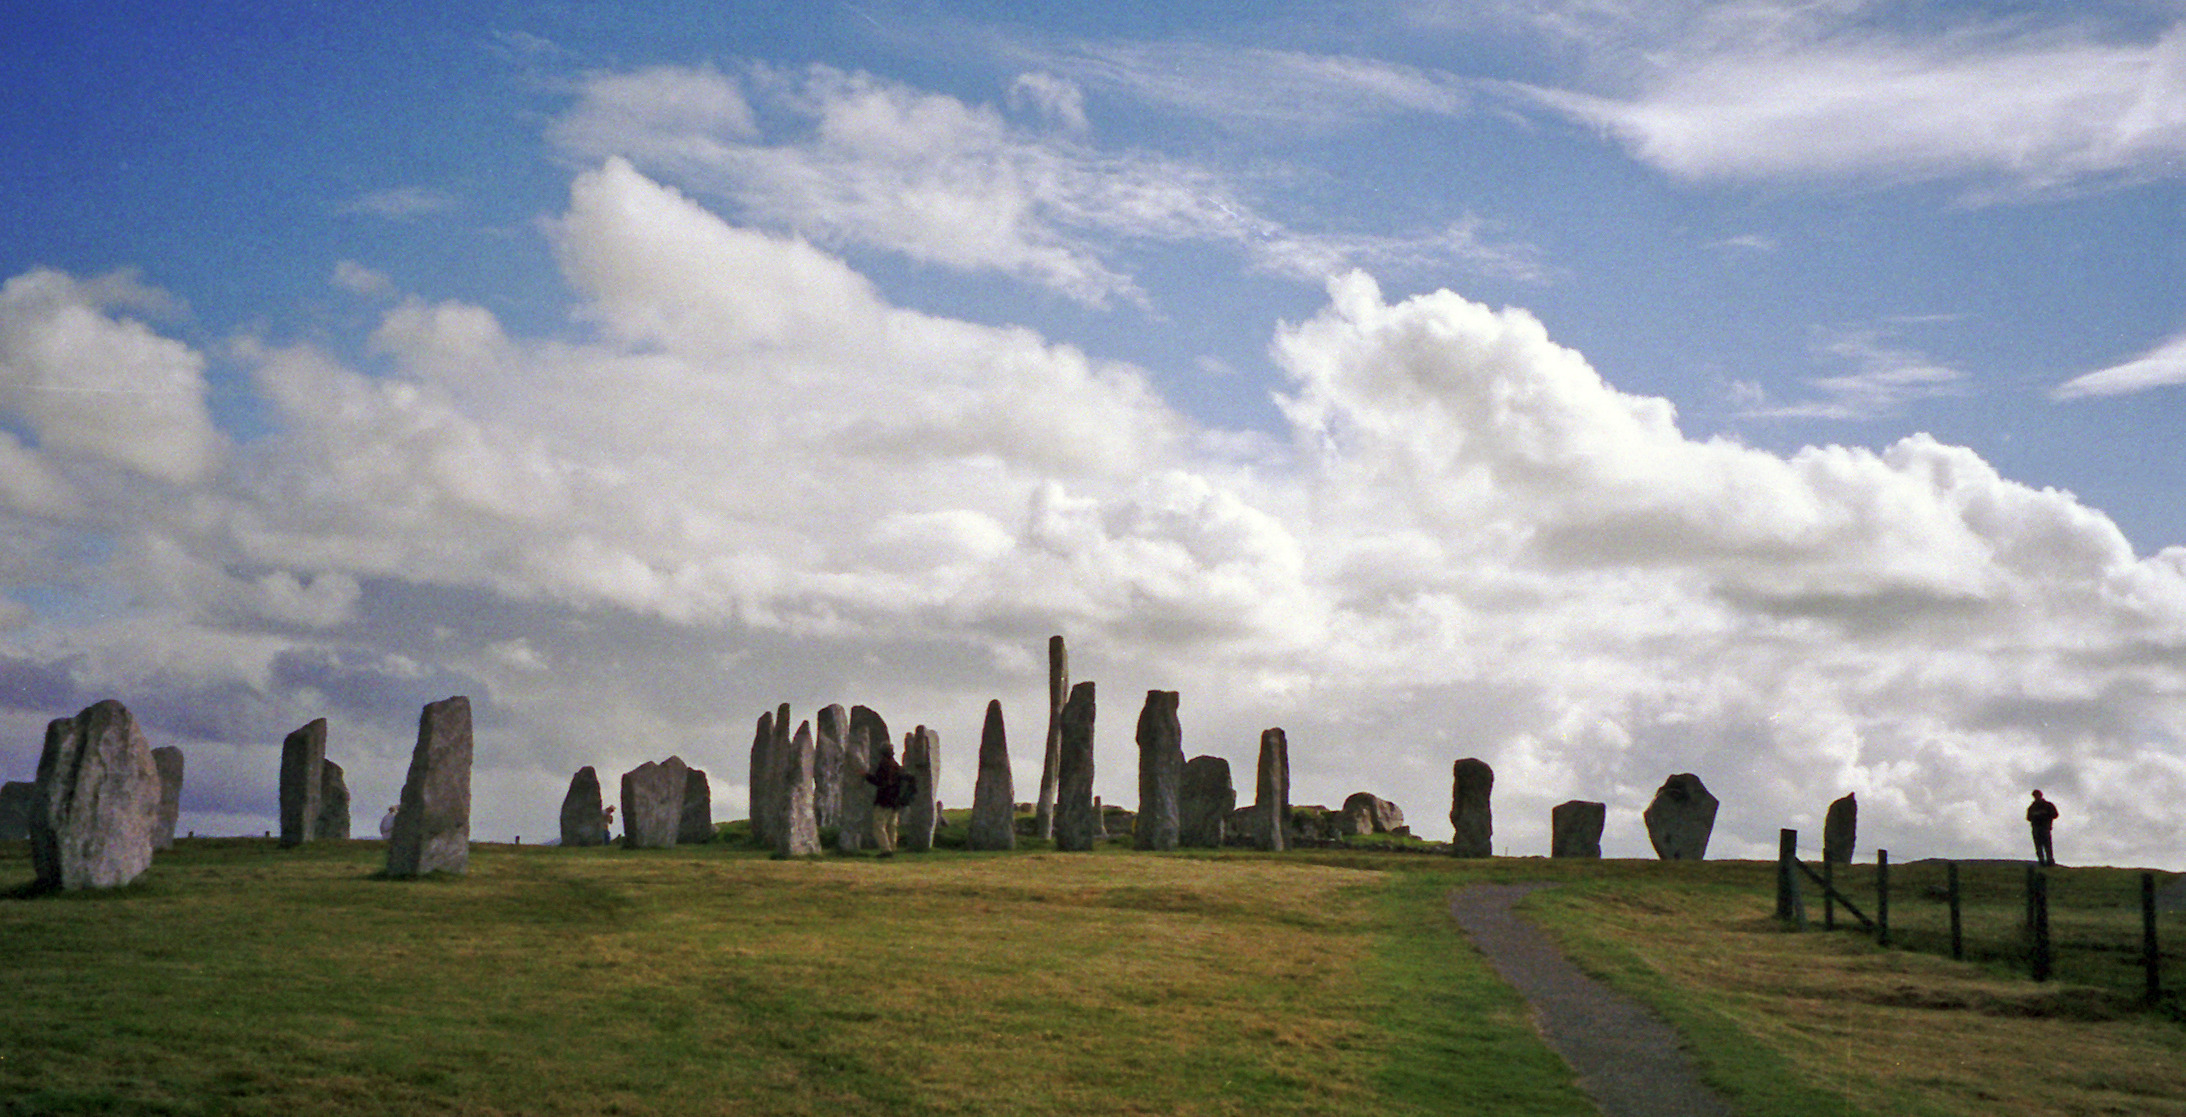 The prehistoric Callanish or Calanais standing stones in Lewis.